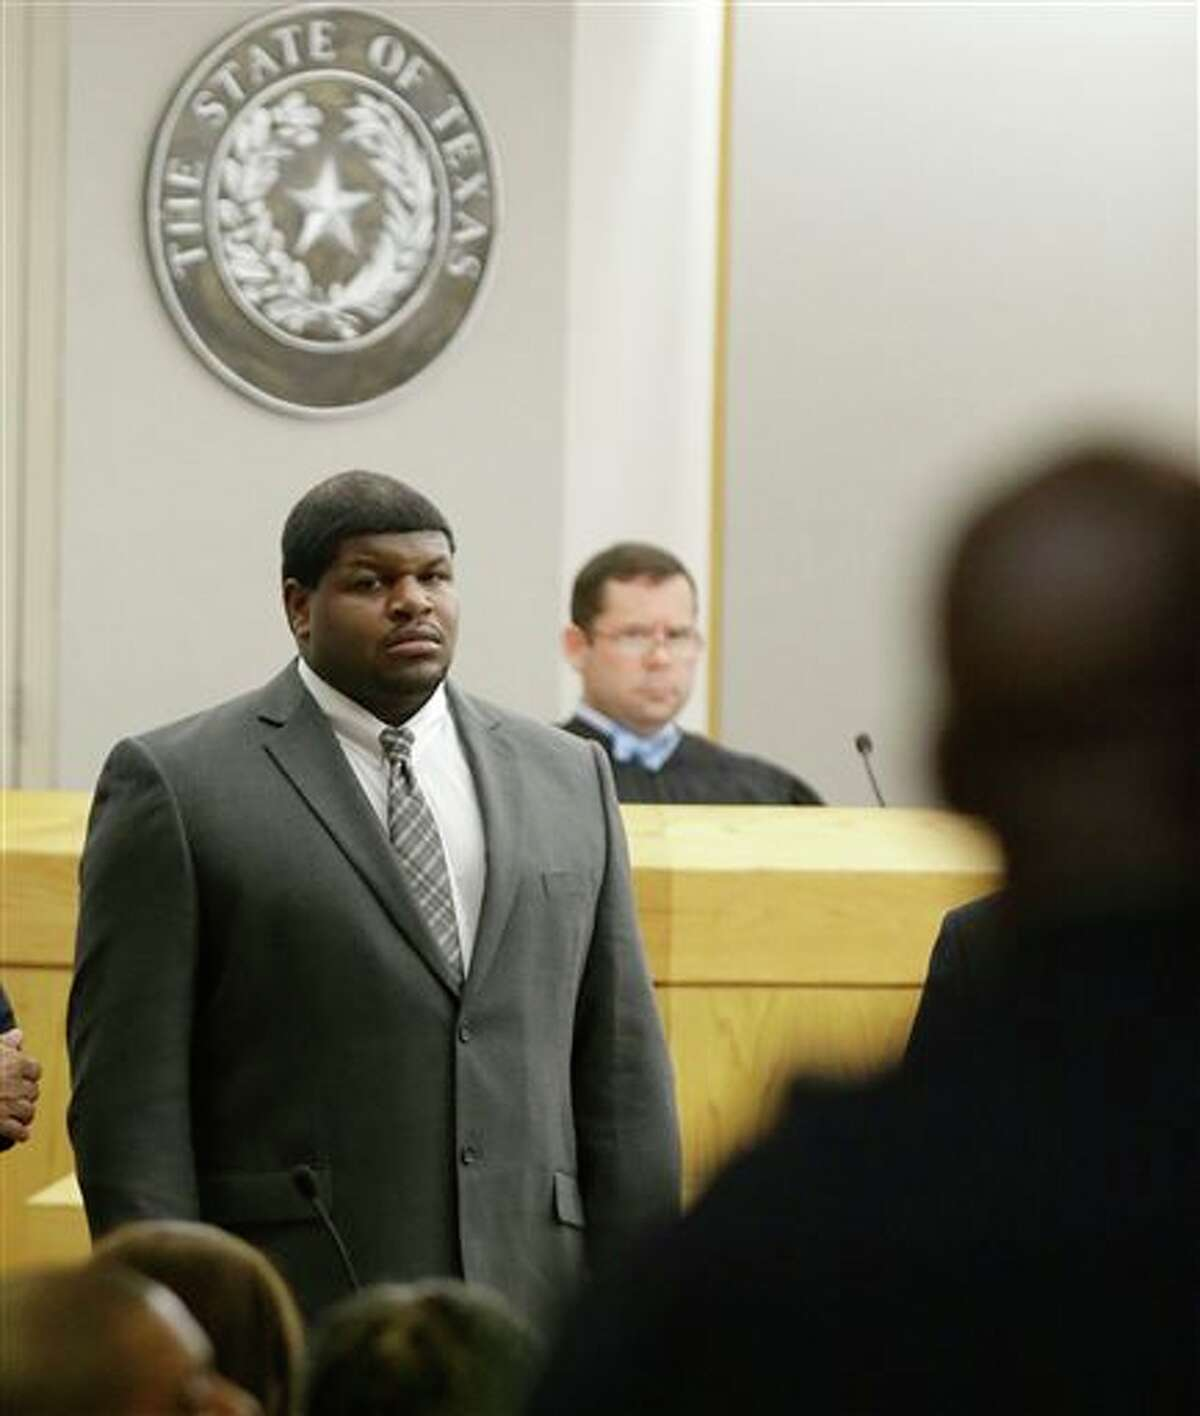 (File Photo) Former Dallas Cowboys' Josh Brent stands in court as potential jurors are directed into Judge Robert Burns, looking on in back, courtroom Friday, Jan. 10, 2014, in Dallas.